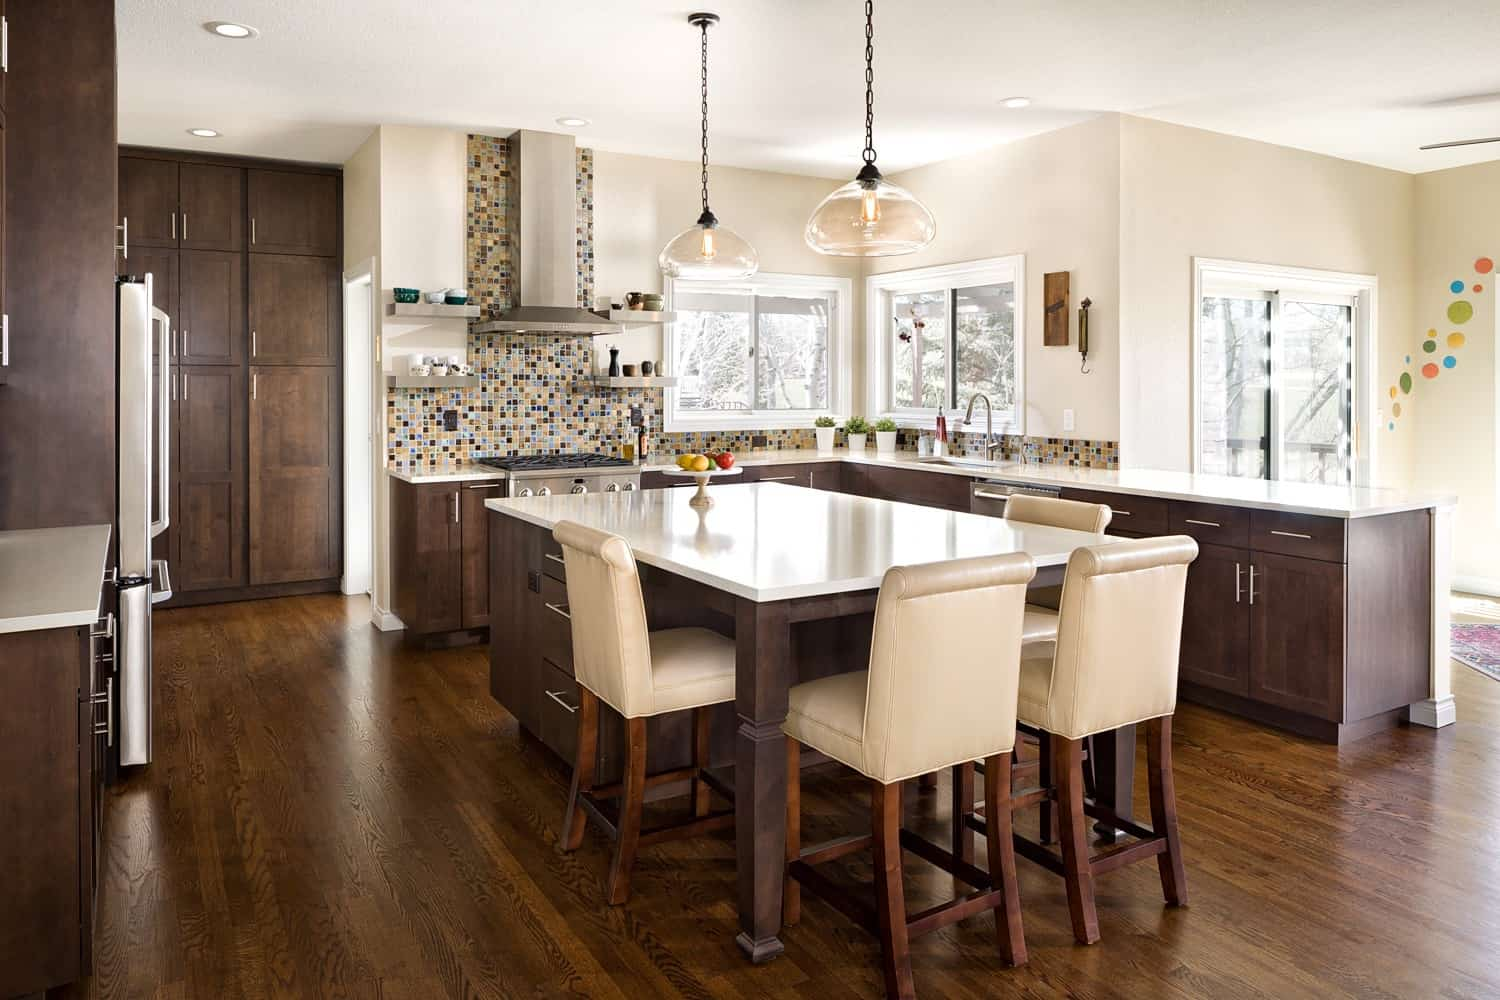 Melton Design Build - Louisville Remodel - Kitchen Remodel Overall from the South